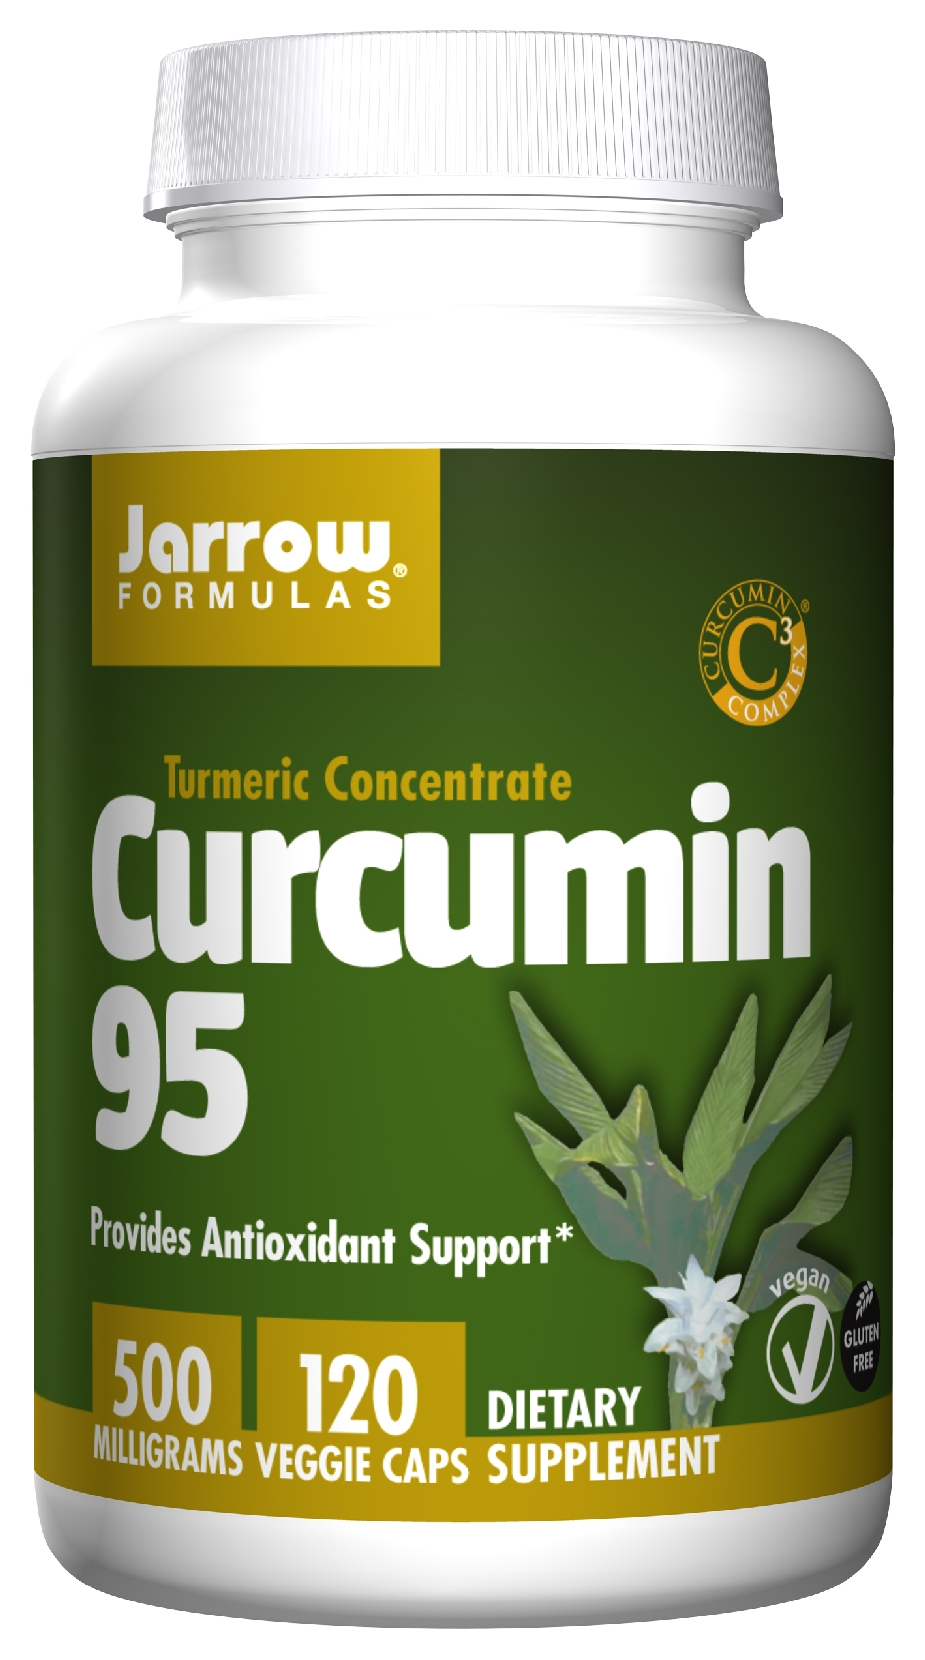 Curcumin 95 500 mg 120 caps by Jarrow Formulas